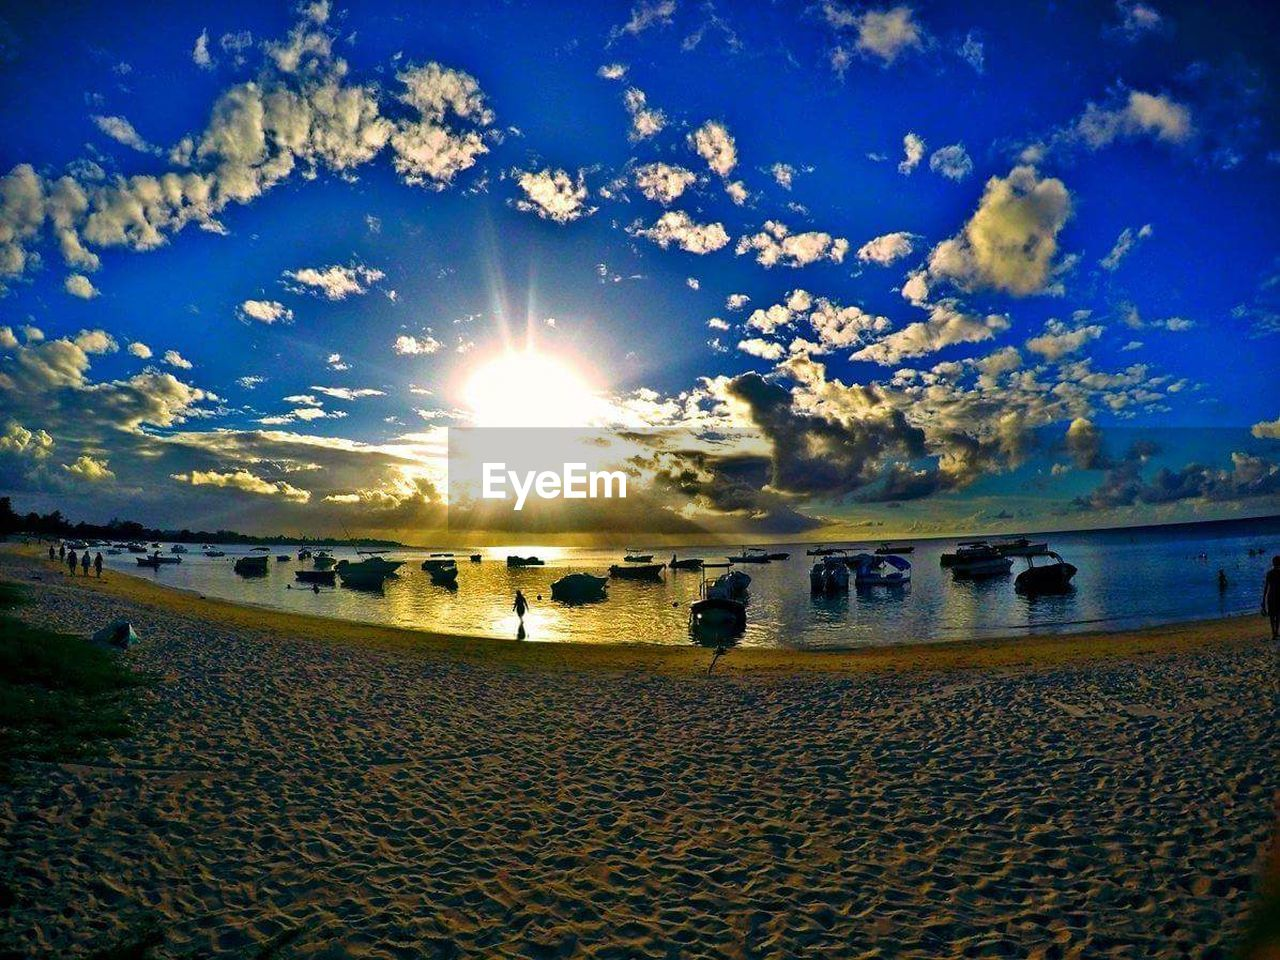 beach, sun, sky, lens flare, sunlight, sand, sunbeam, nature, sunset, sea, outdoors, water, vacations, scenics, horizon over water, beauty in nature, no people, day